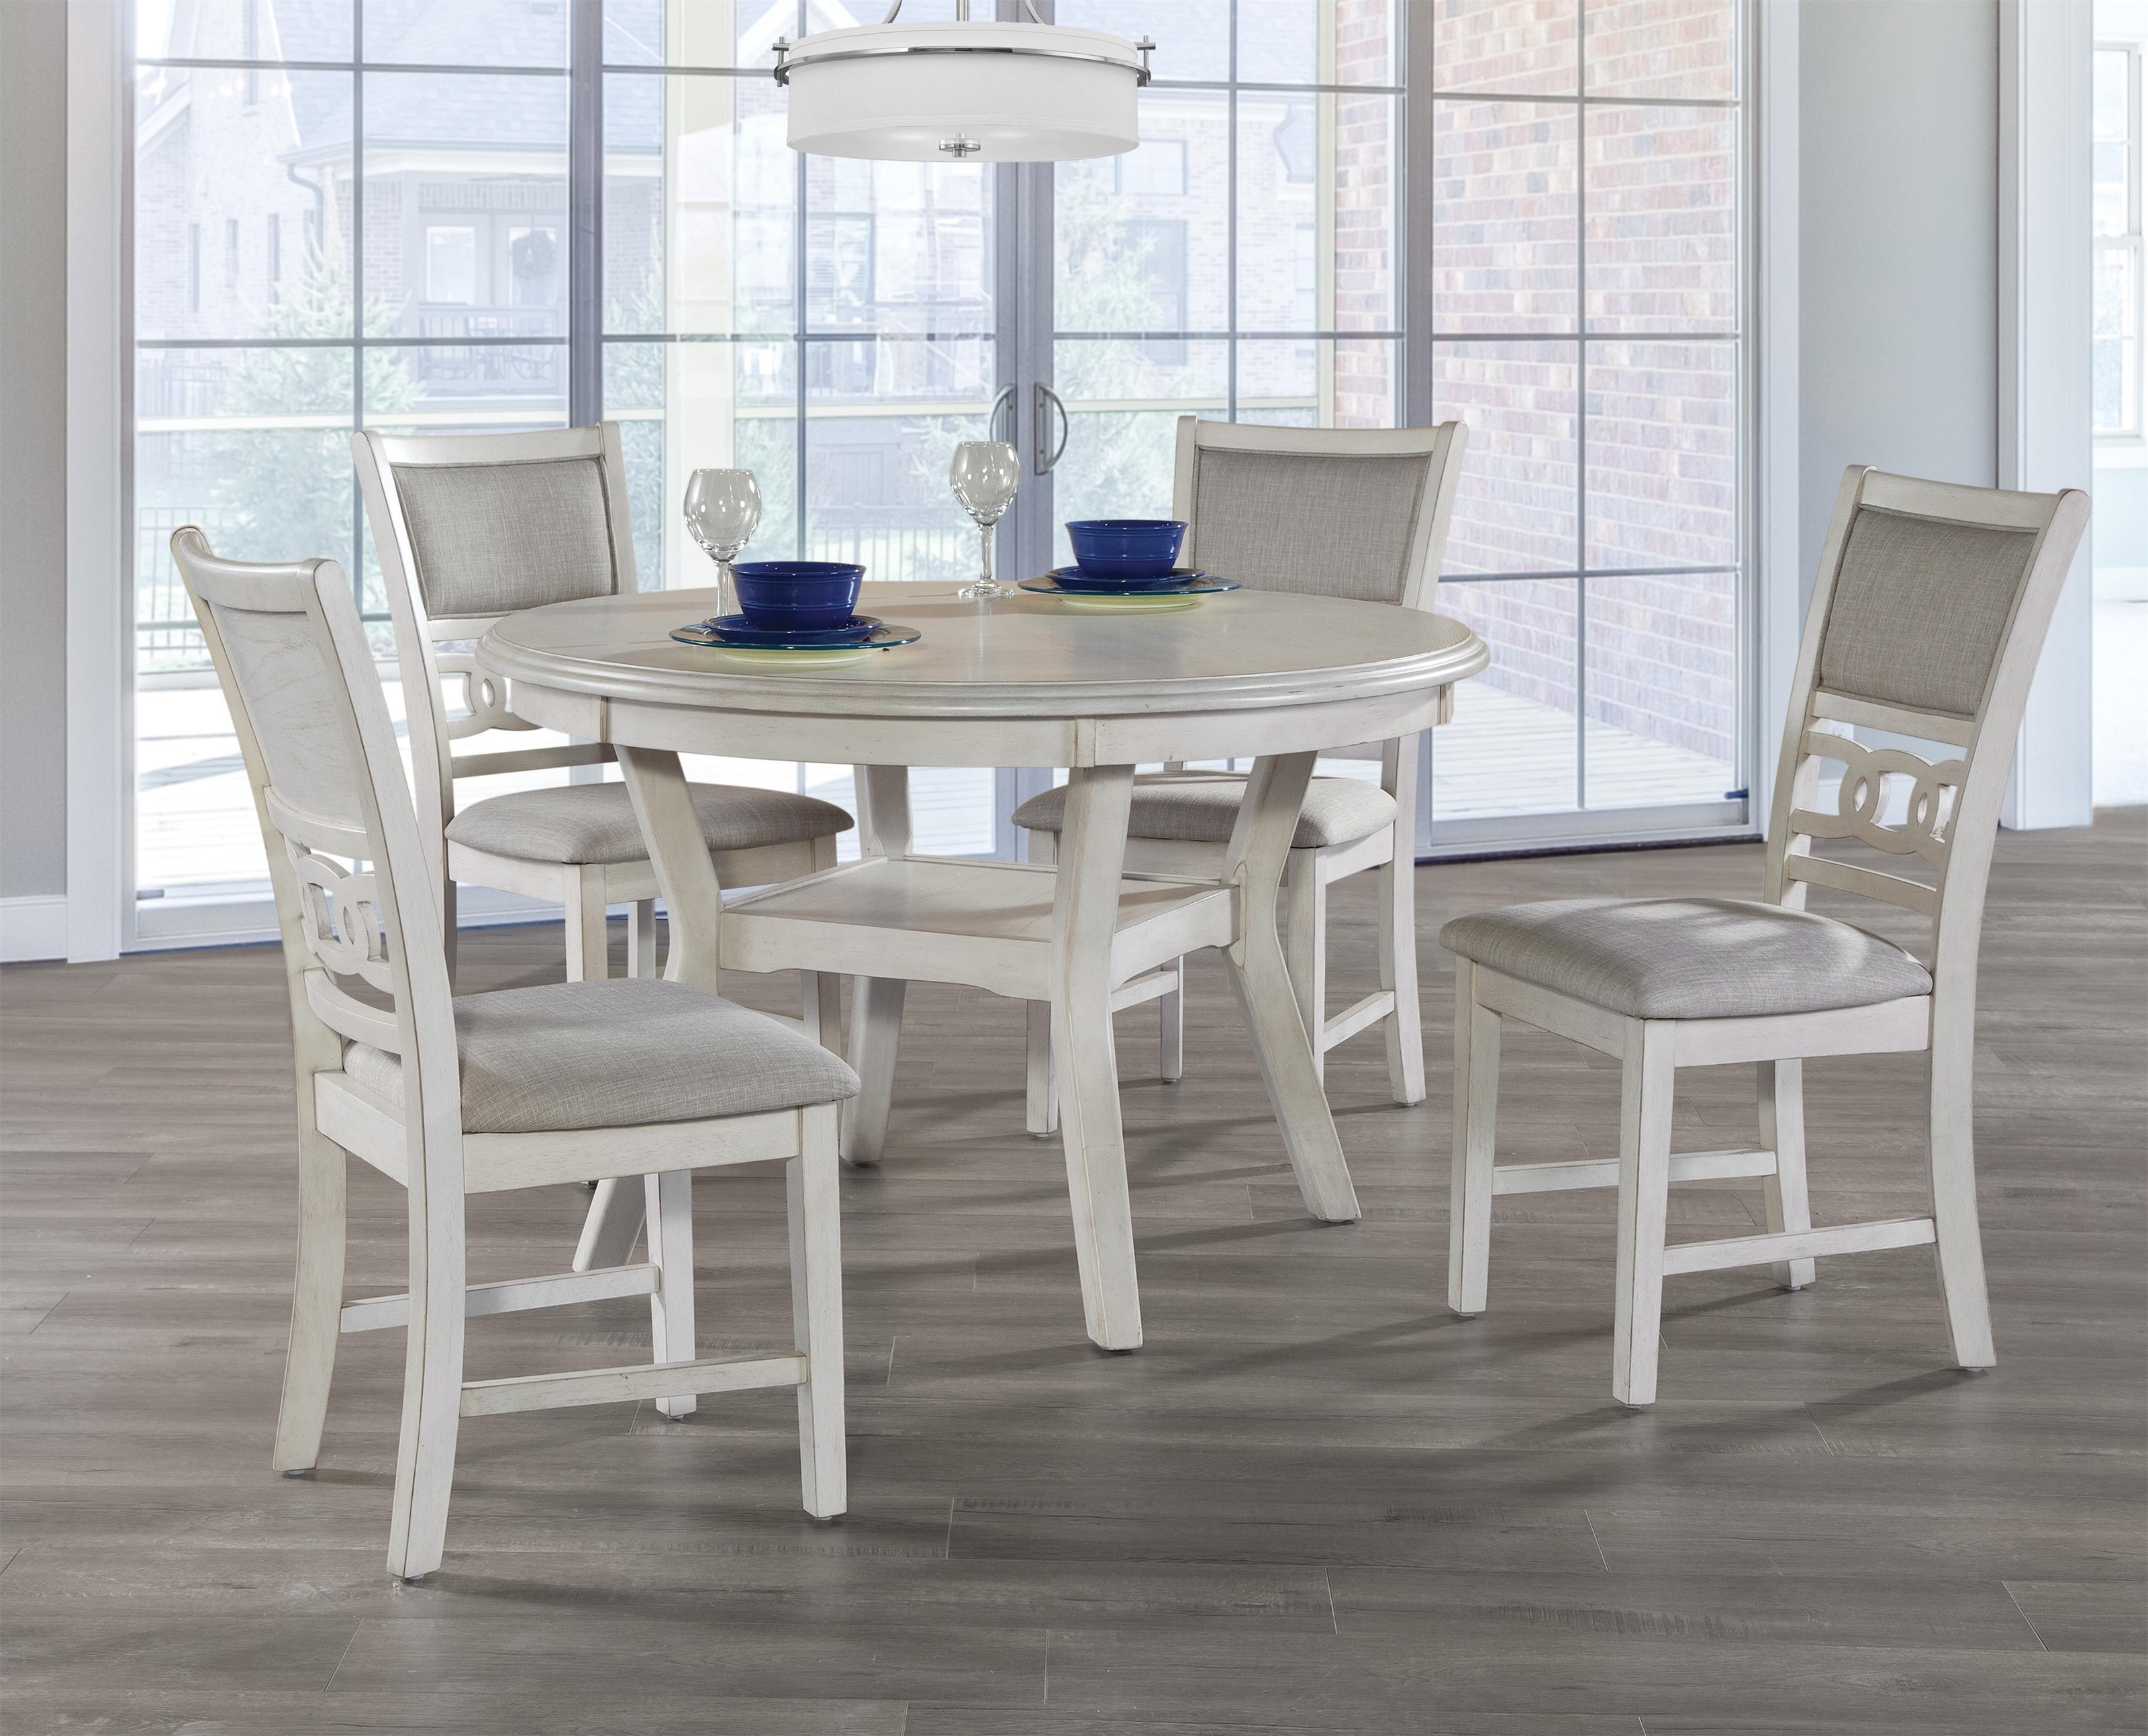 Delicieux New Classic GiaBisque Round Table U0026 4 Chairs